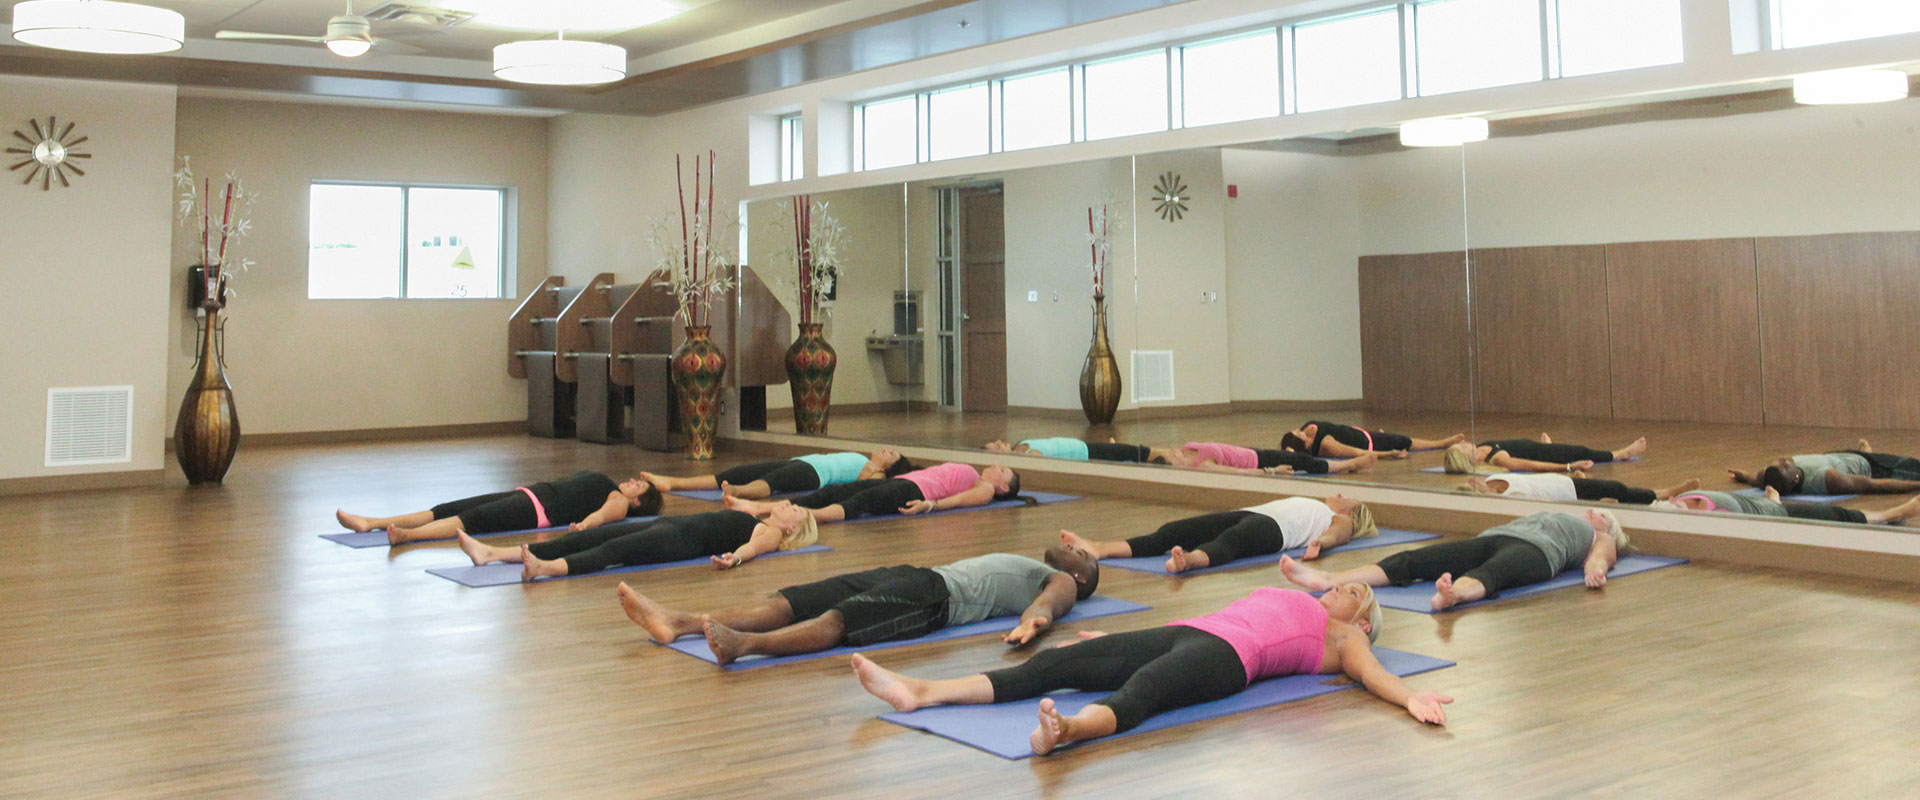 Movati Athletic Brantford - Yoga Studio